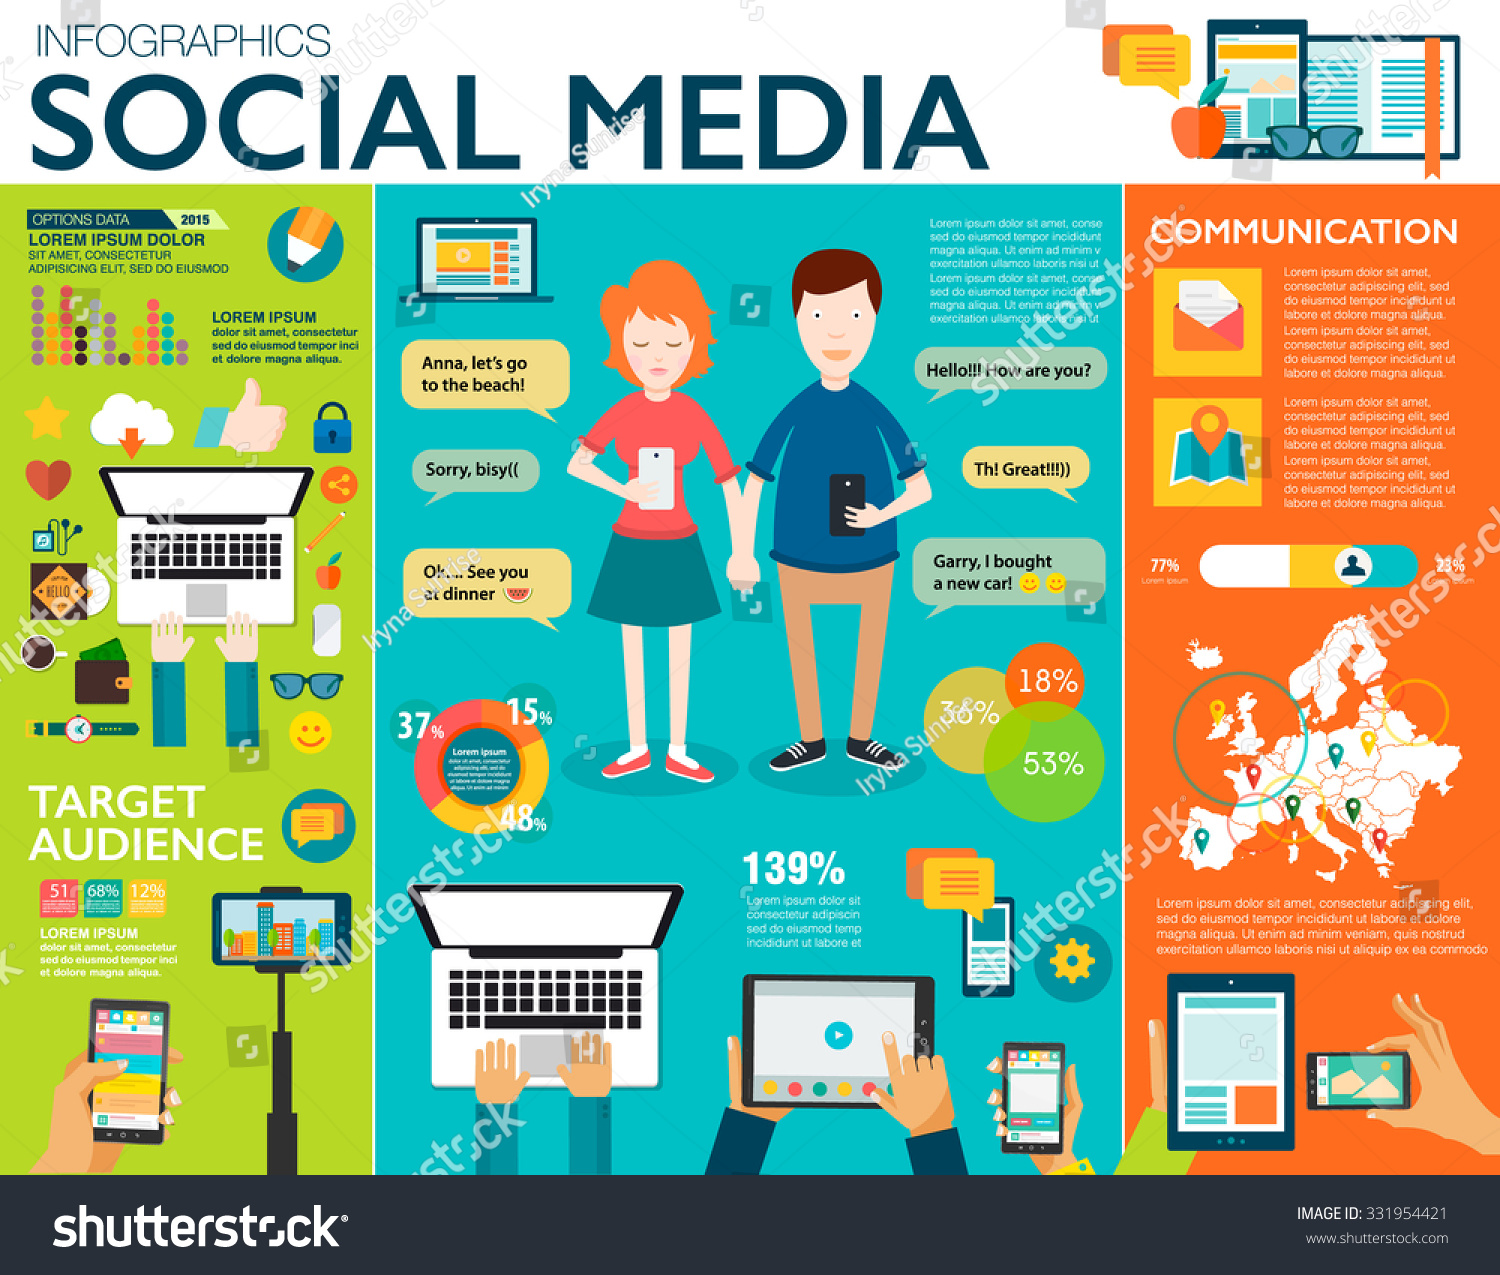 Social Media Infographic Set Charts Icons Stock Vector (Royalty Free ...